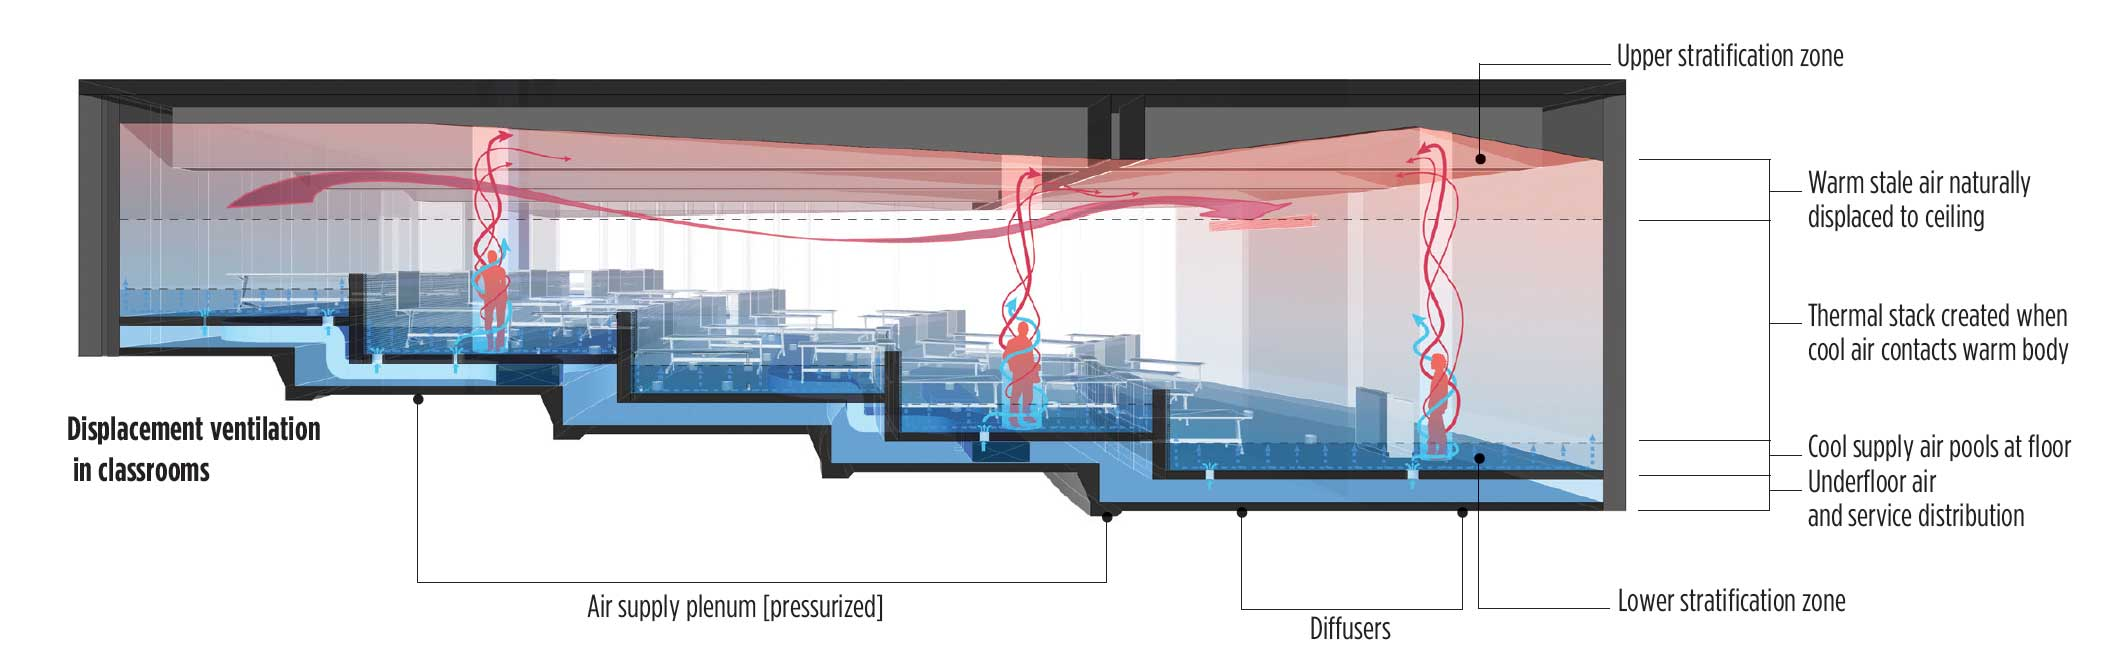 Efficient hvac systems energy systems sustainable living for What is the most efficient heating system